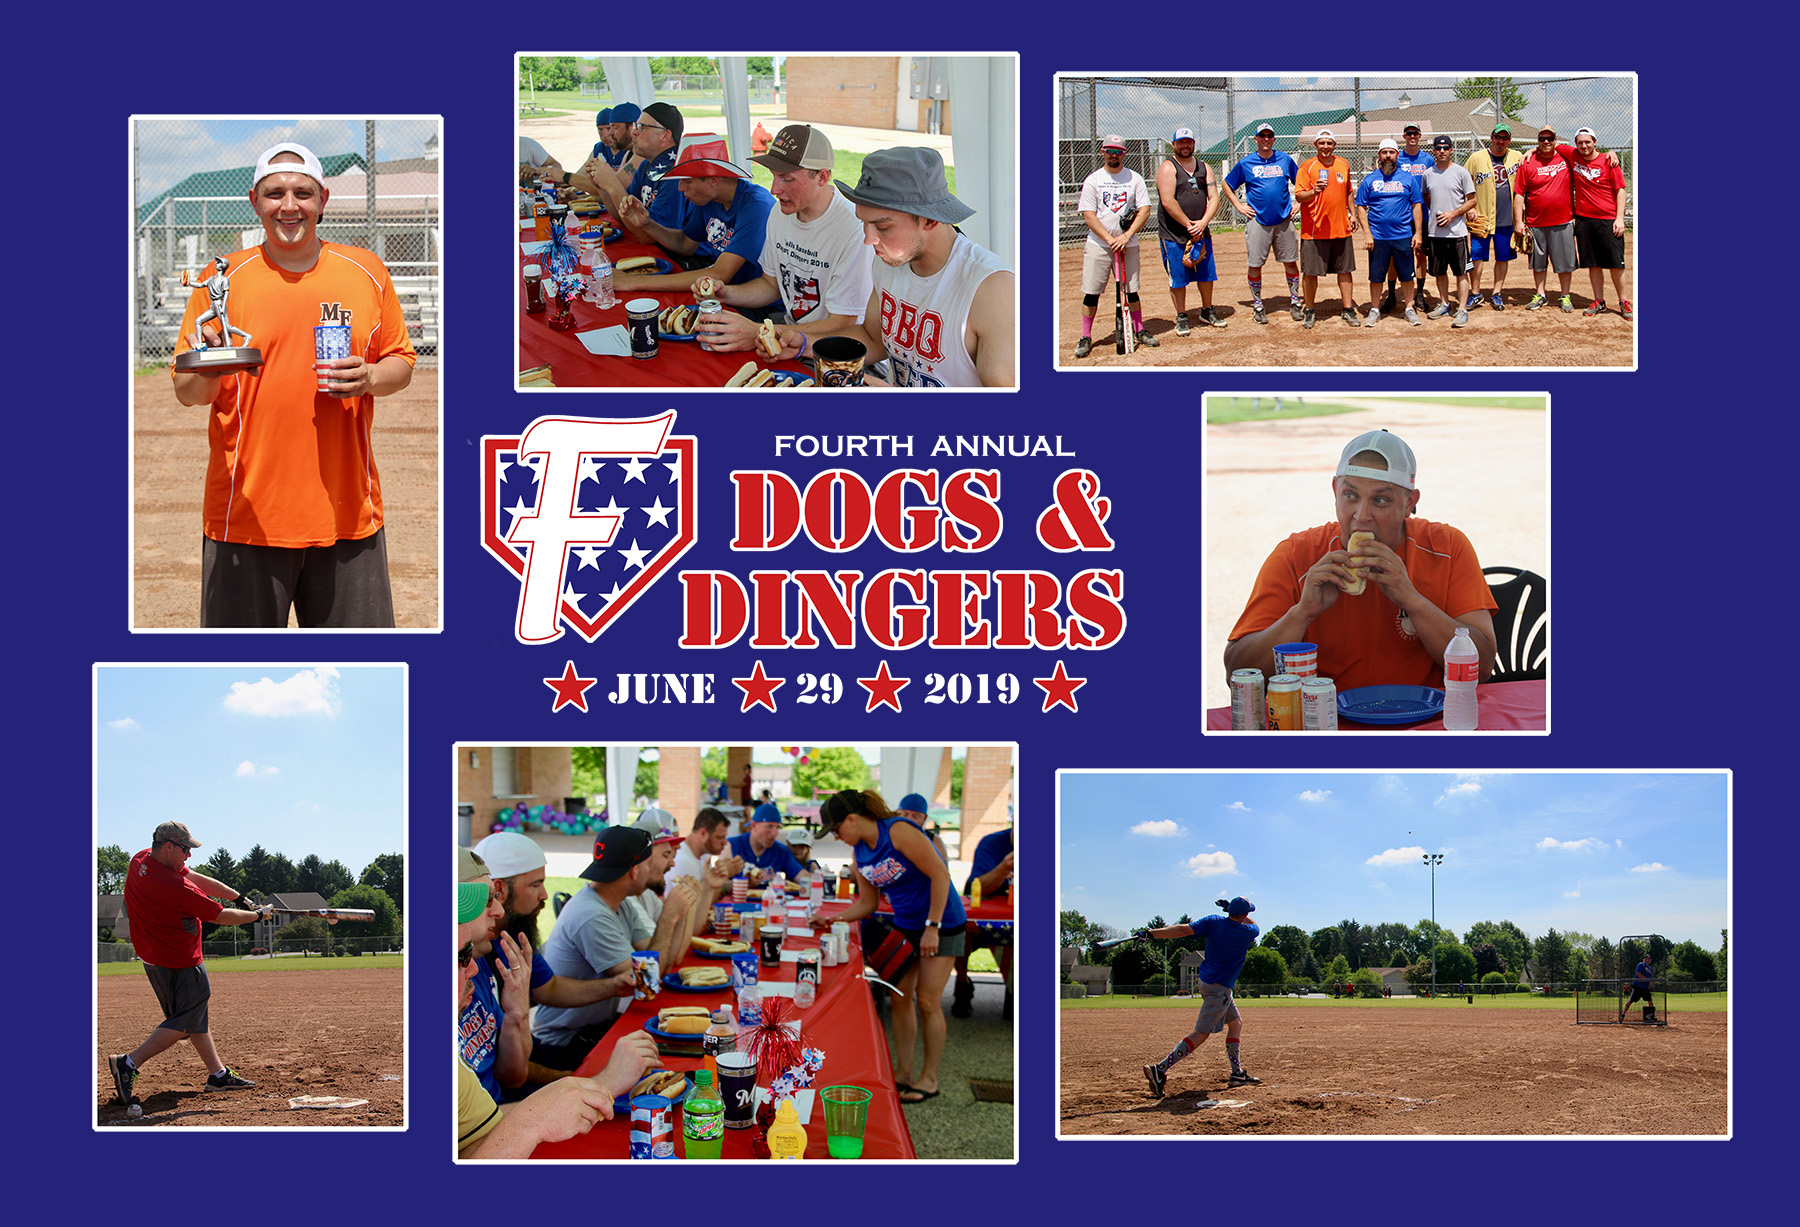 Dogs & Dingers 2019